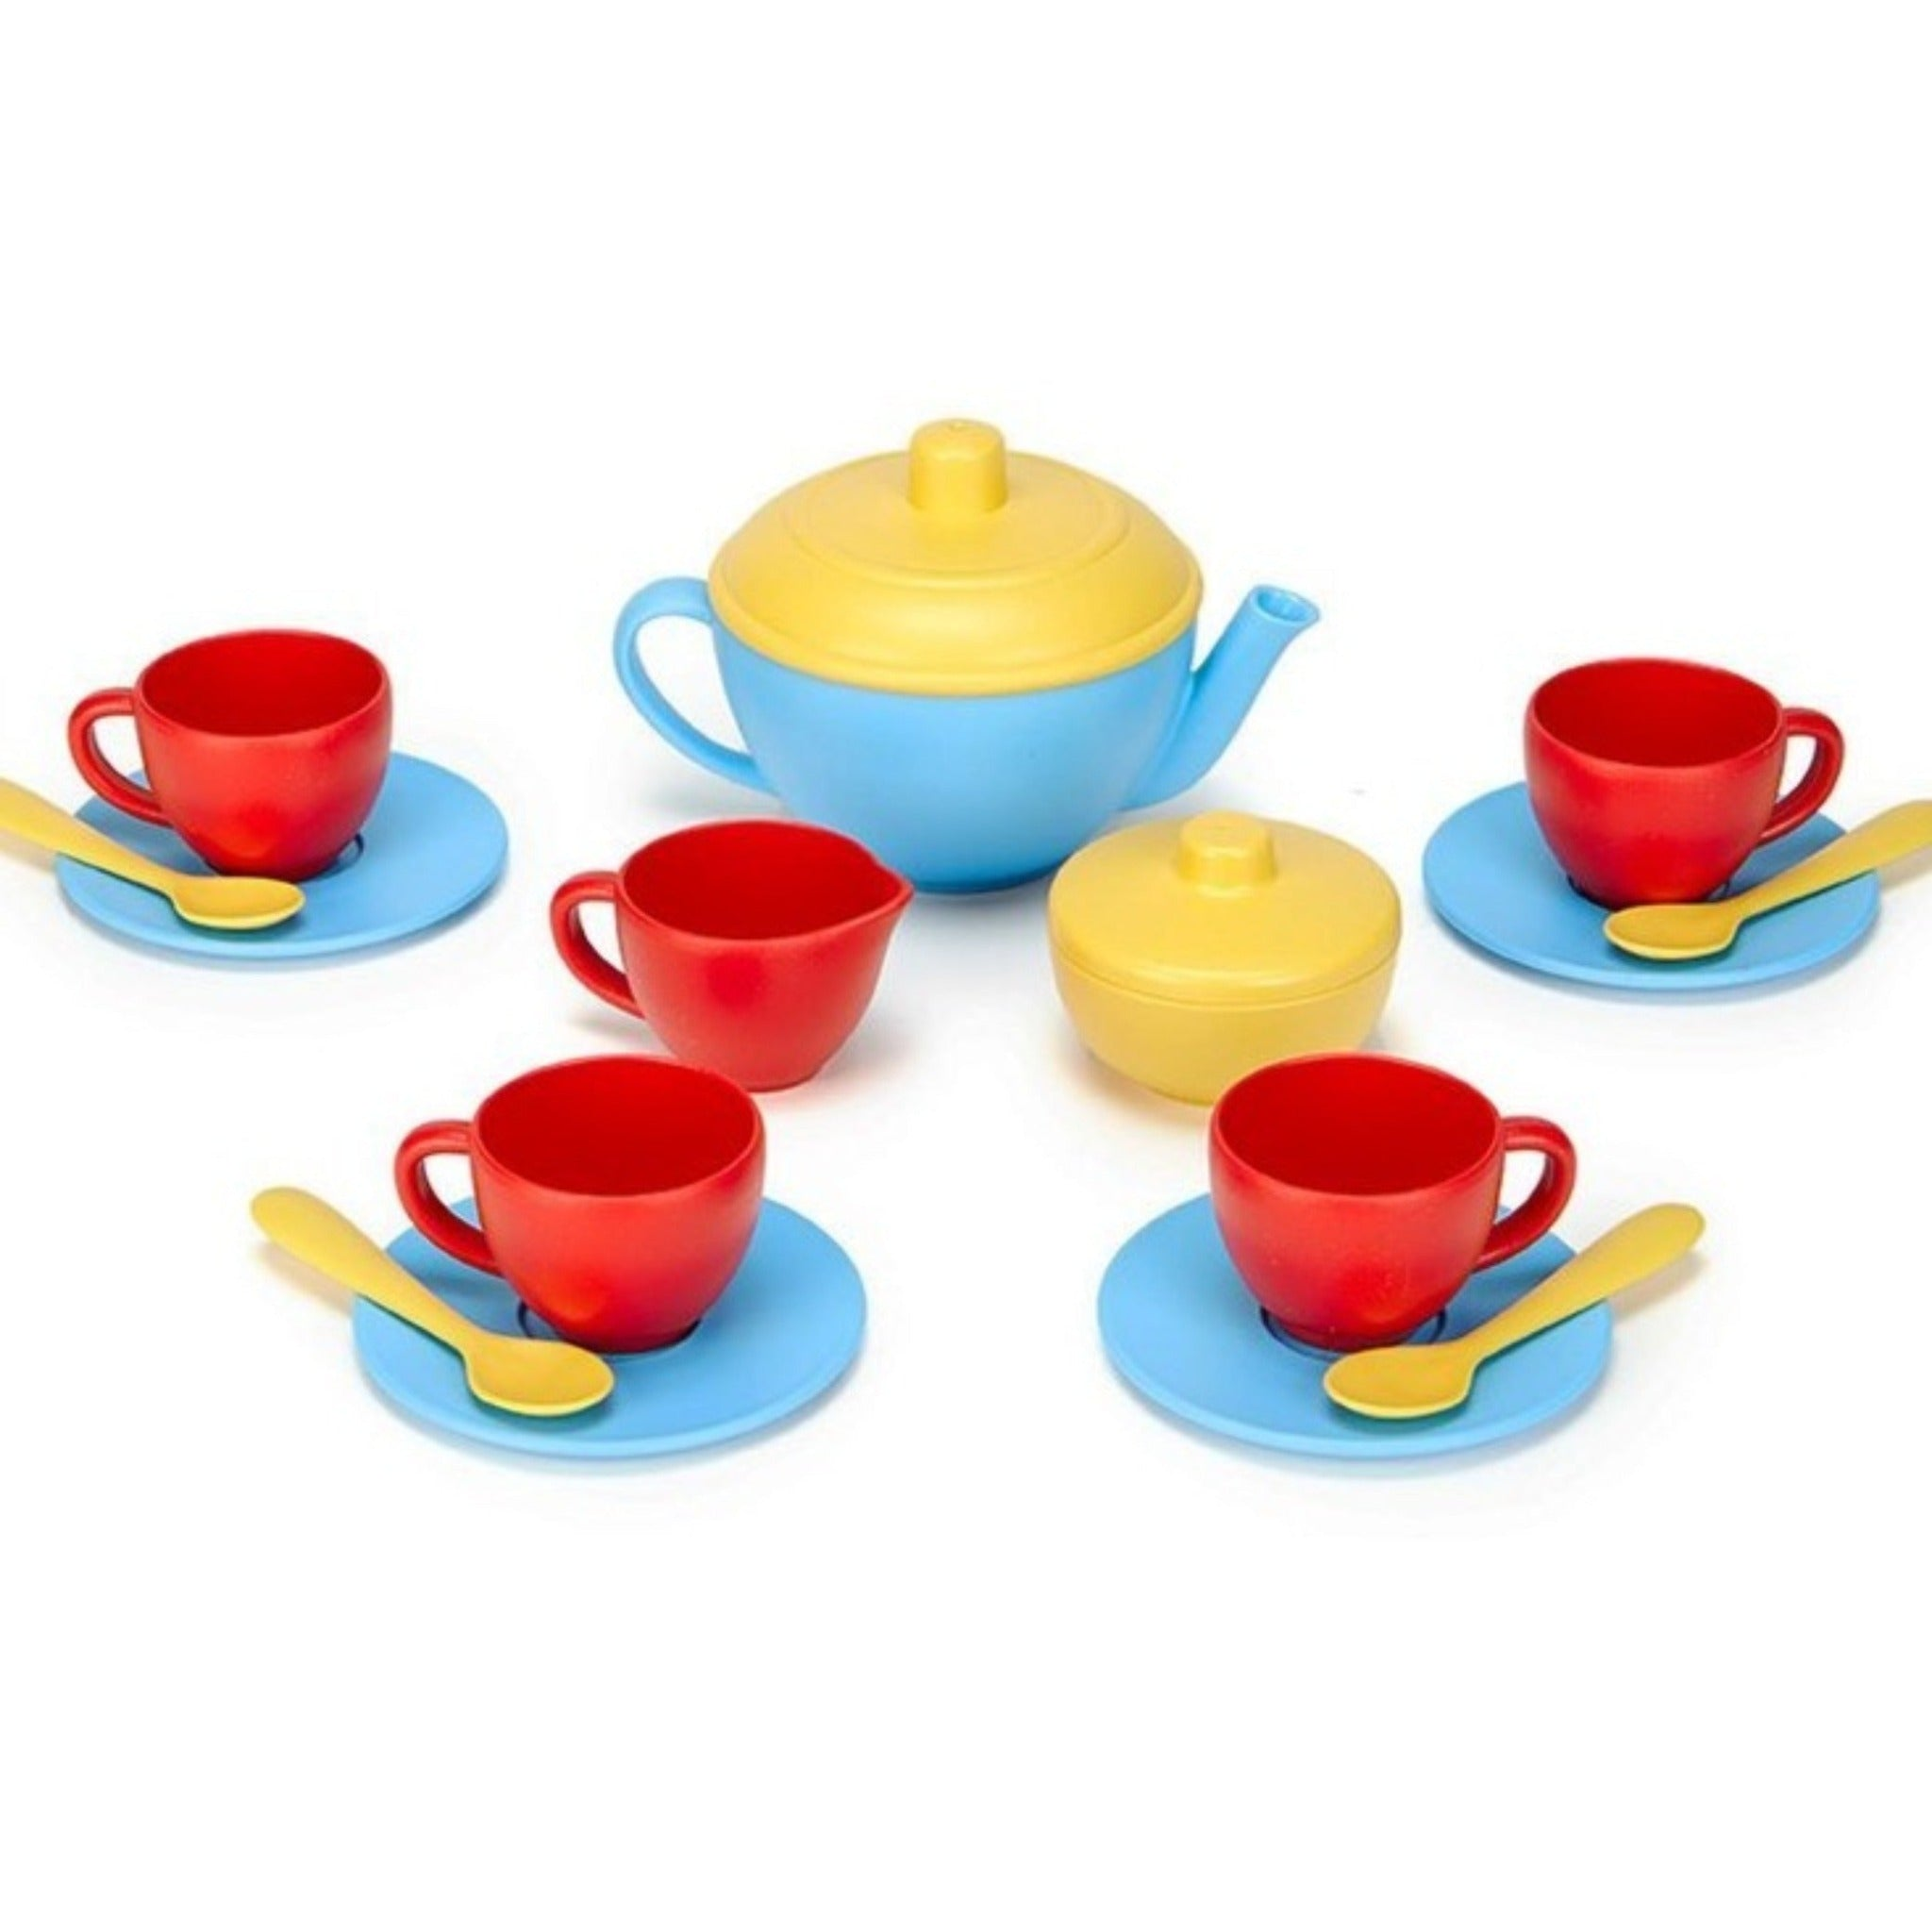 Green Toys 17 blue, red & yellow tea set